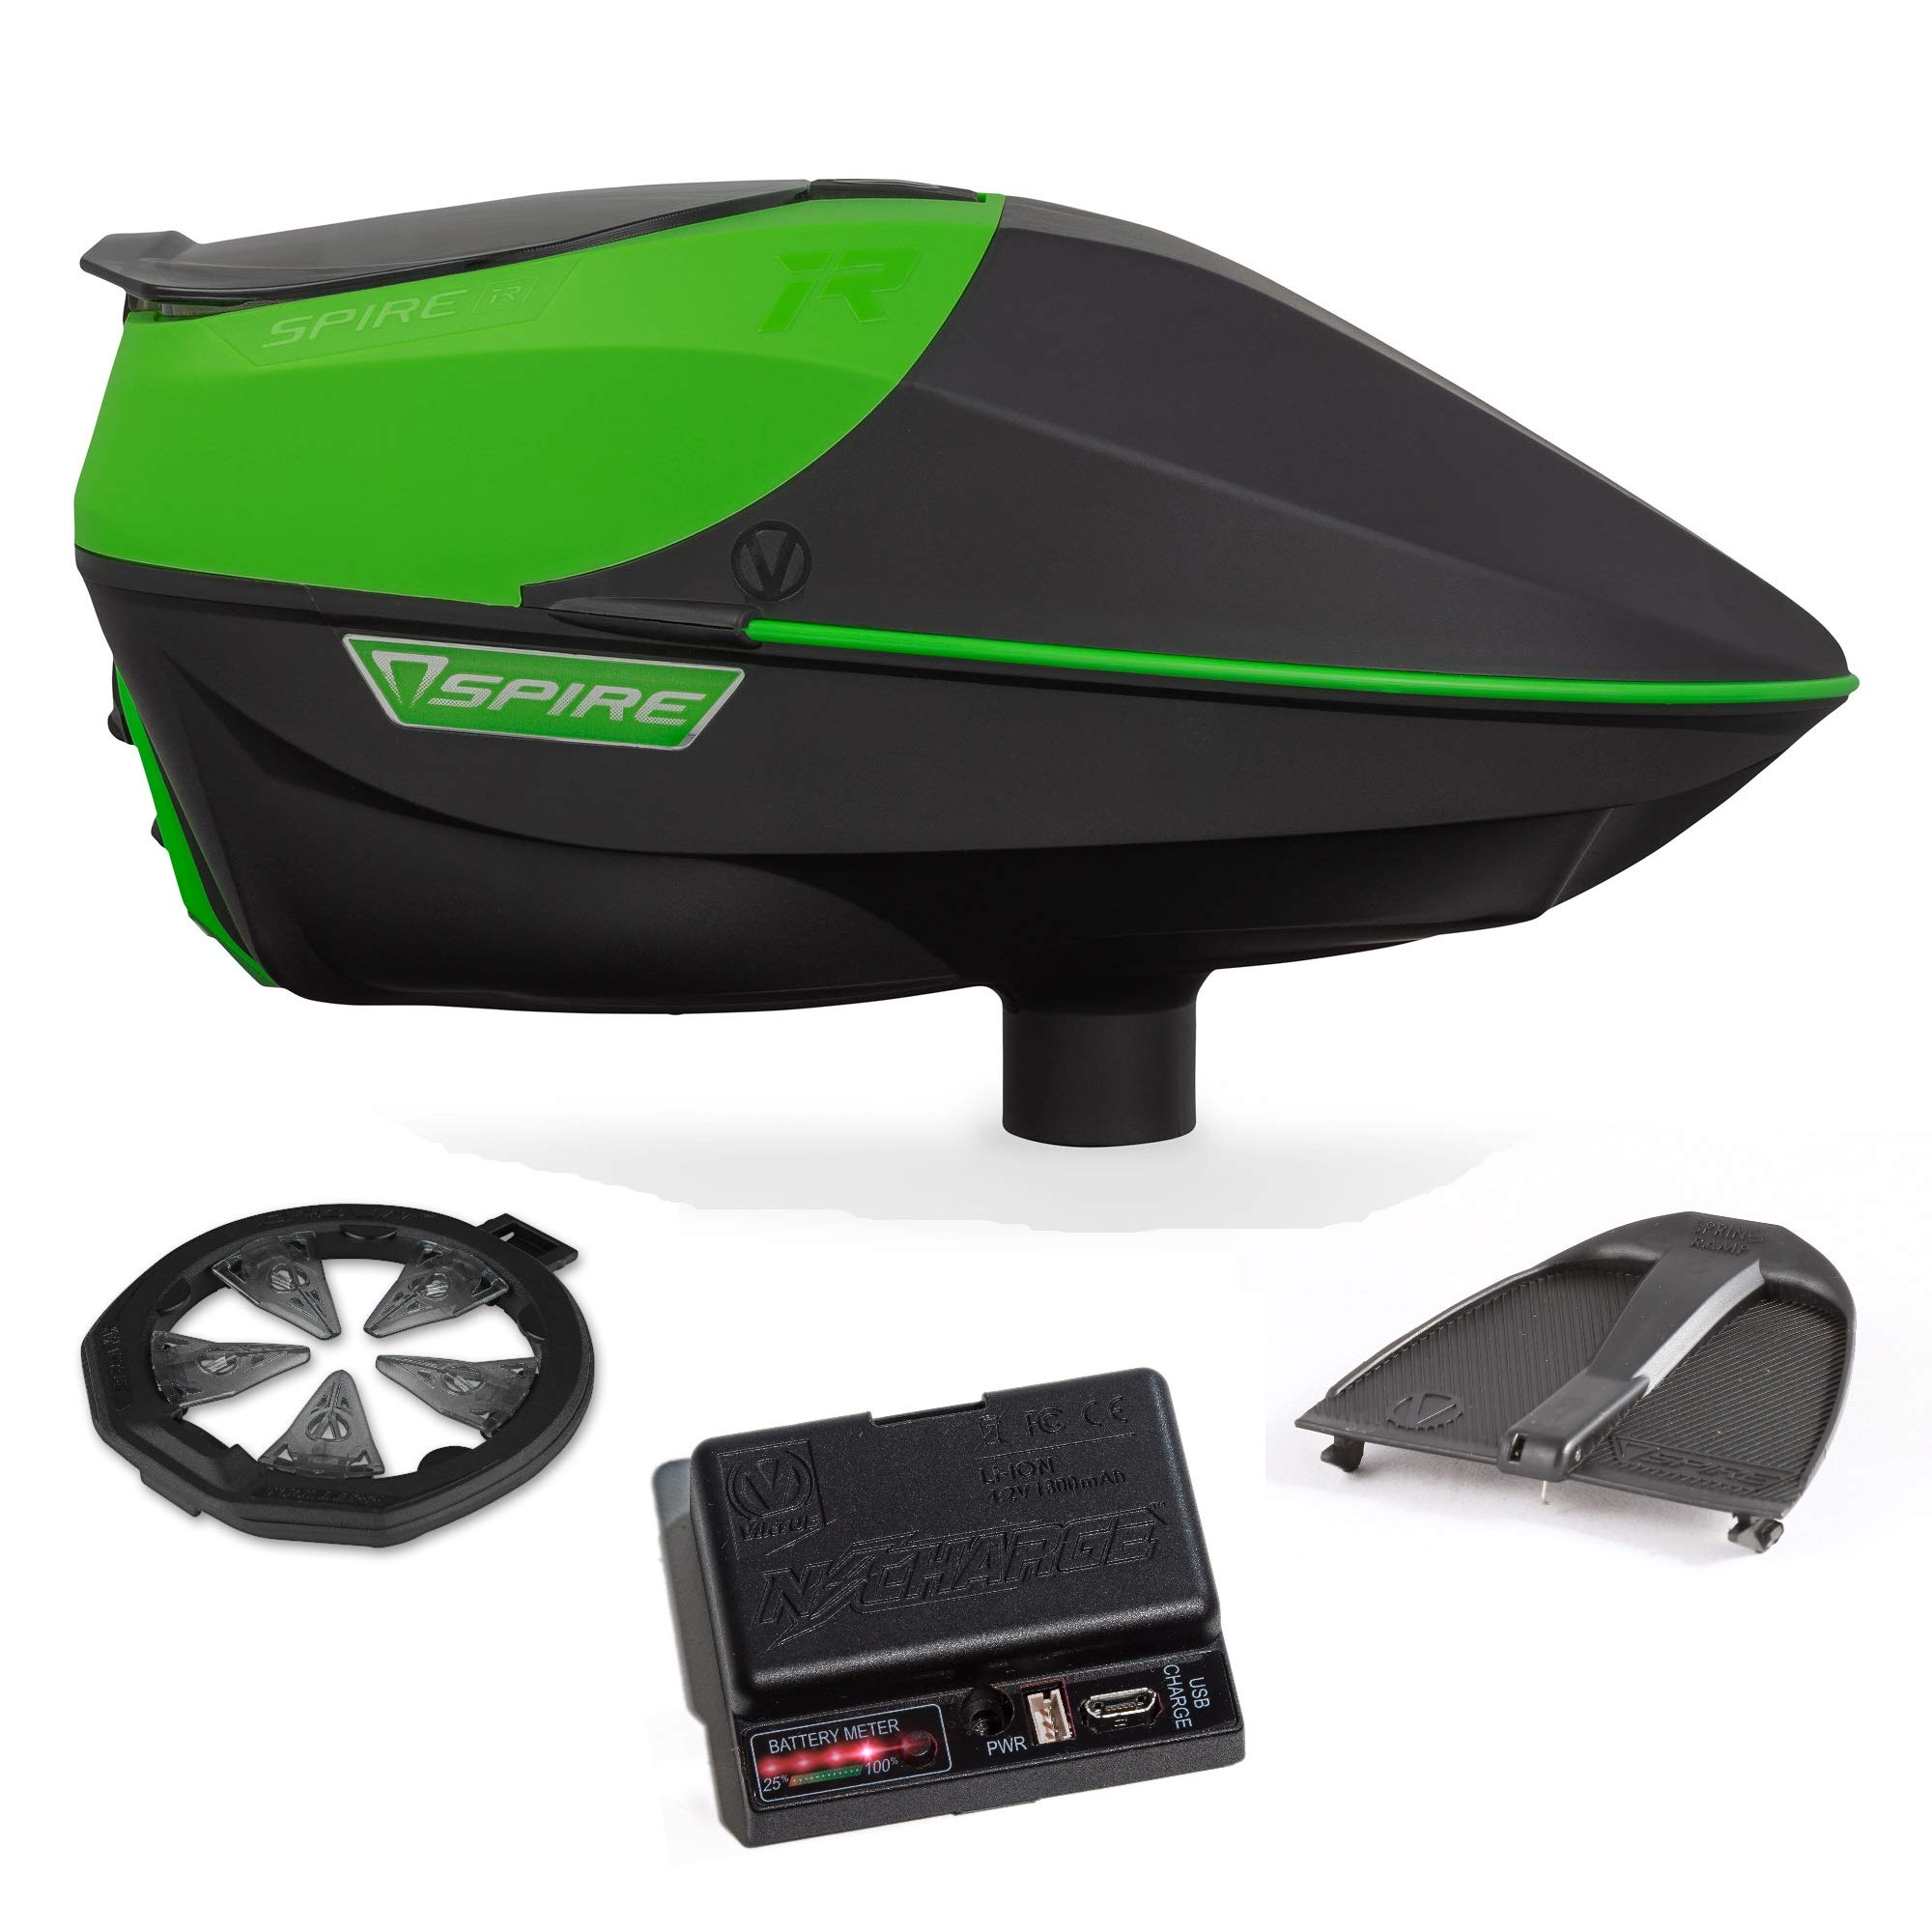 Virtue Spire IR Electronic Paintball Loader, CrownSF II Speedfeed, N-Charge Battery Pack and Spring Ramp Bundle - Lime by Virtue Paintball